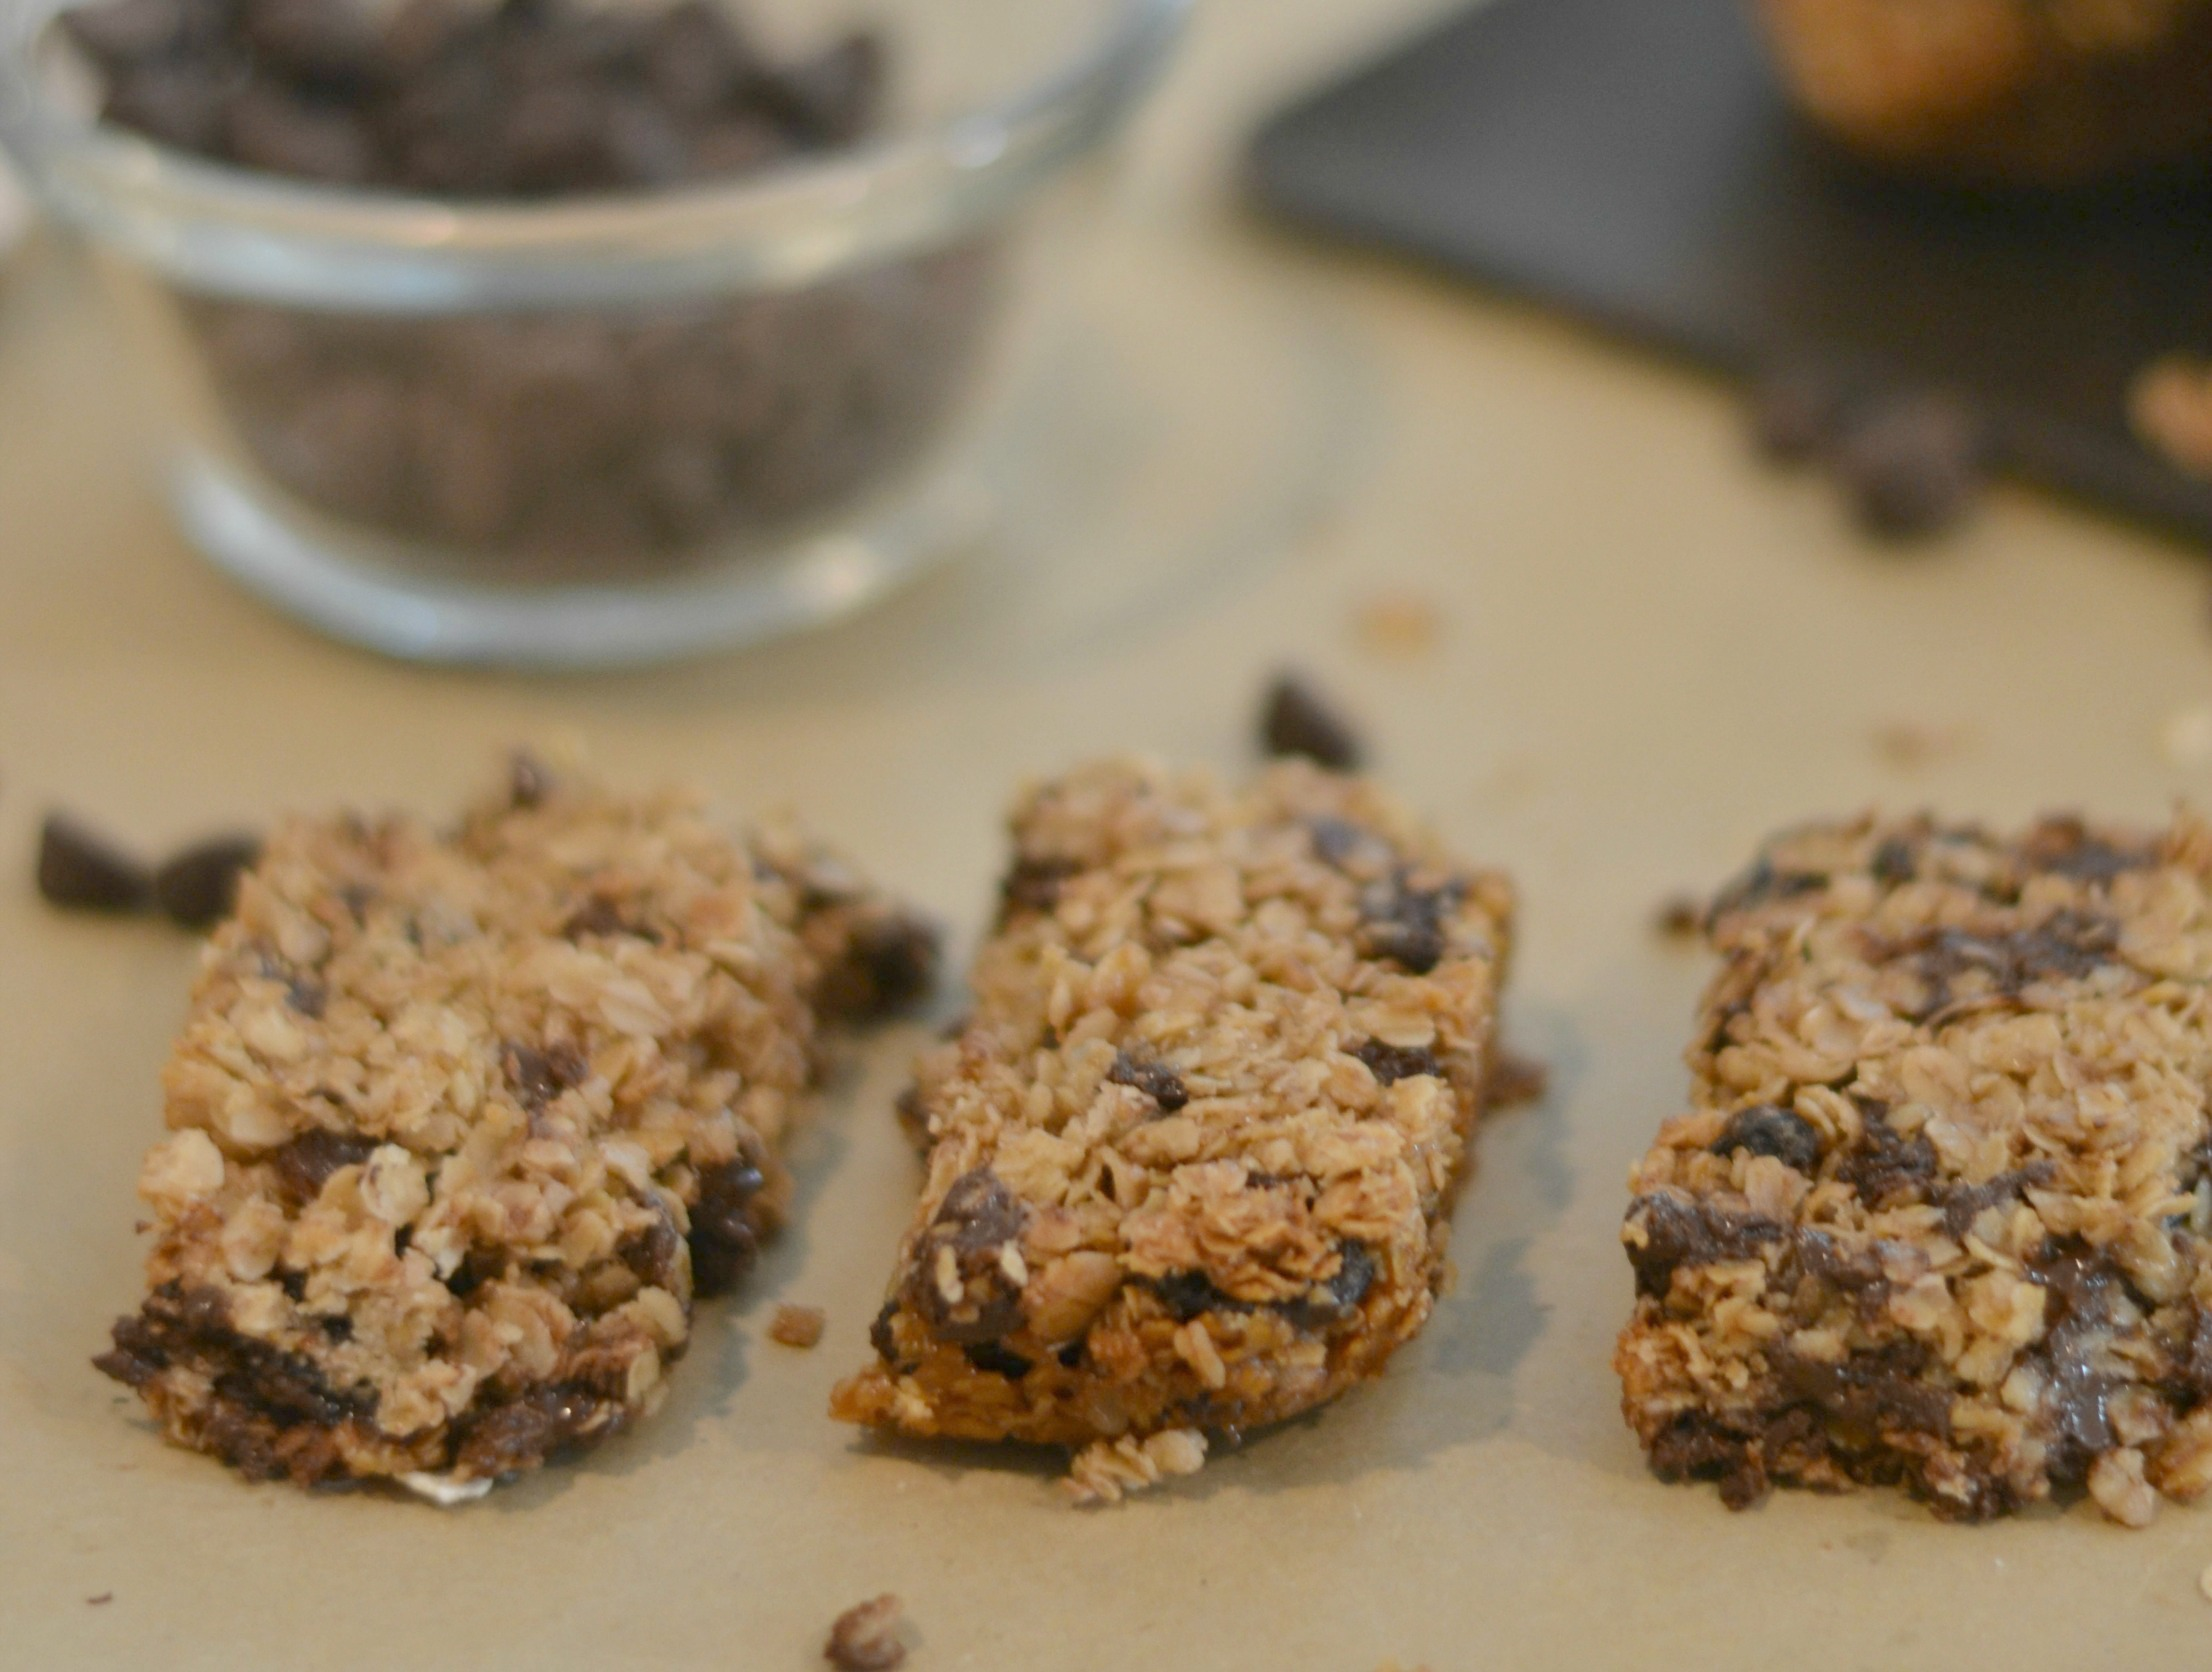 Delicious granola bar recipe and easy to make. These were a hit with my kids!